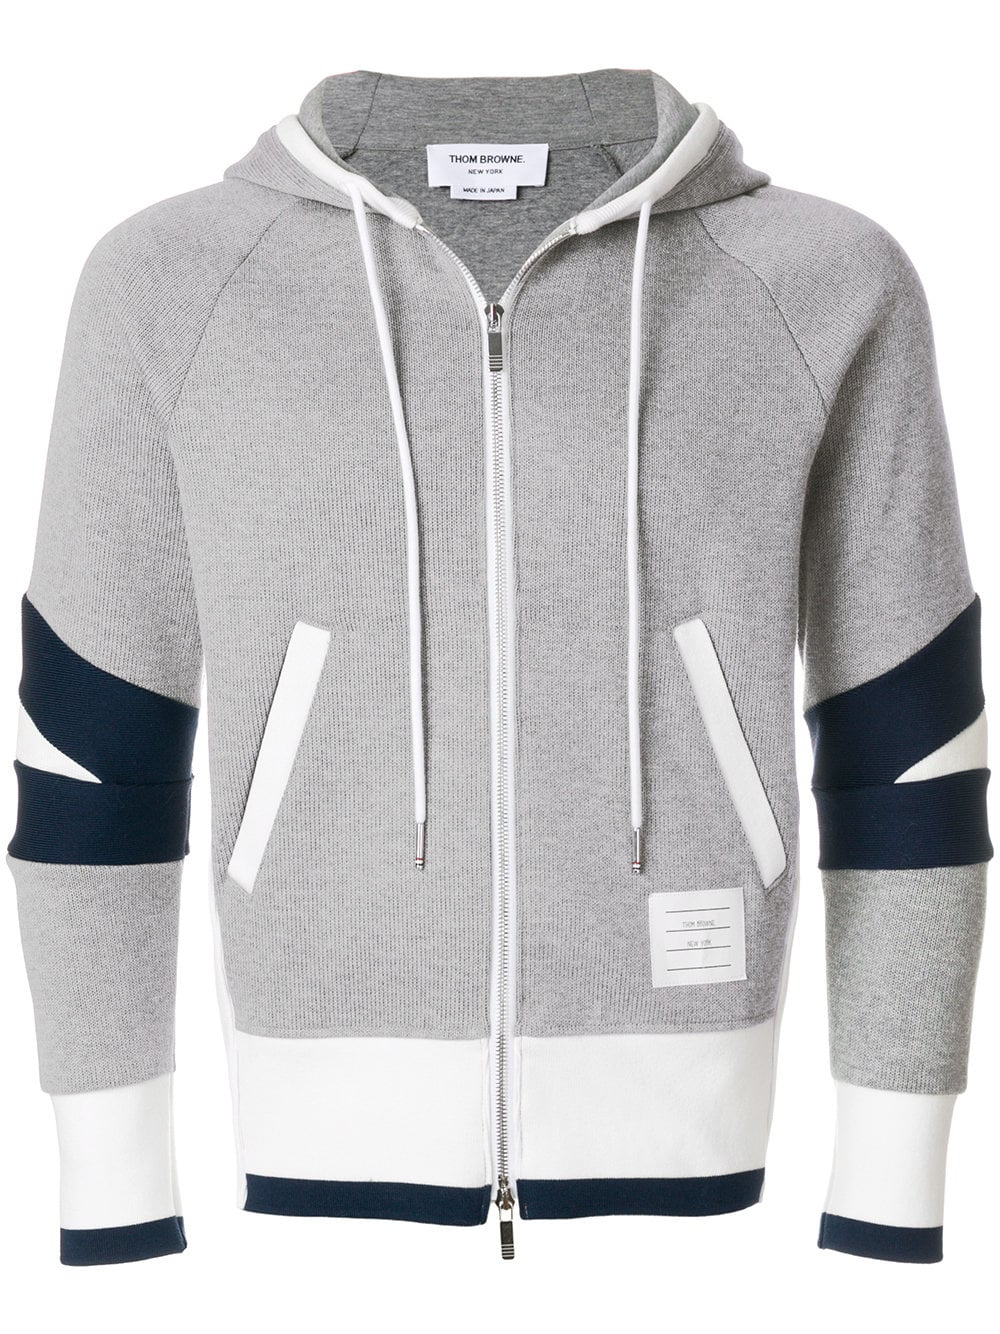 Thom Browne   Grey Zip Up Hoodie